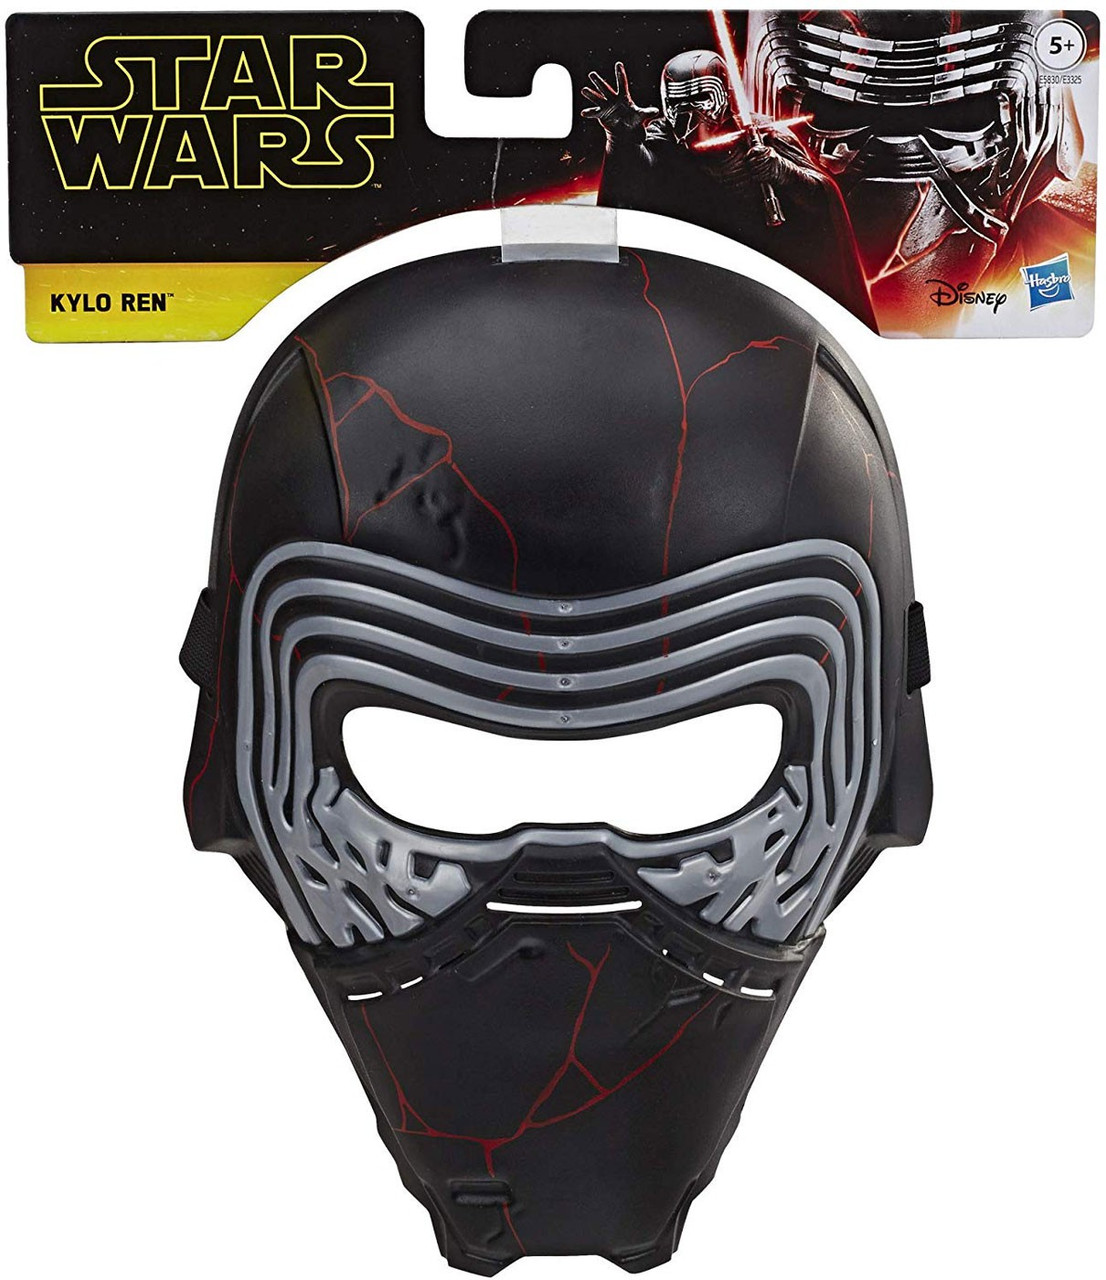 Star Wars The Rise Of Skywalker Kylo Ren Role Play Mask Hasbro Toys Toywiz